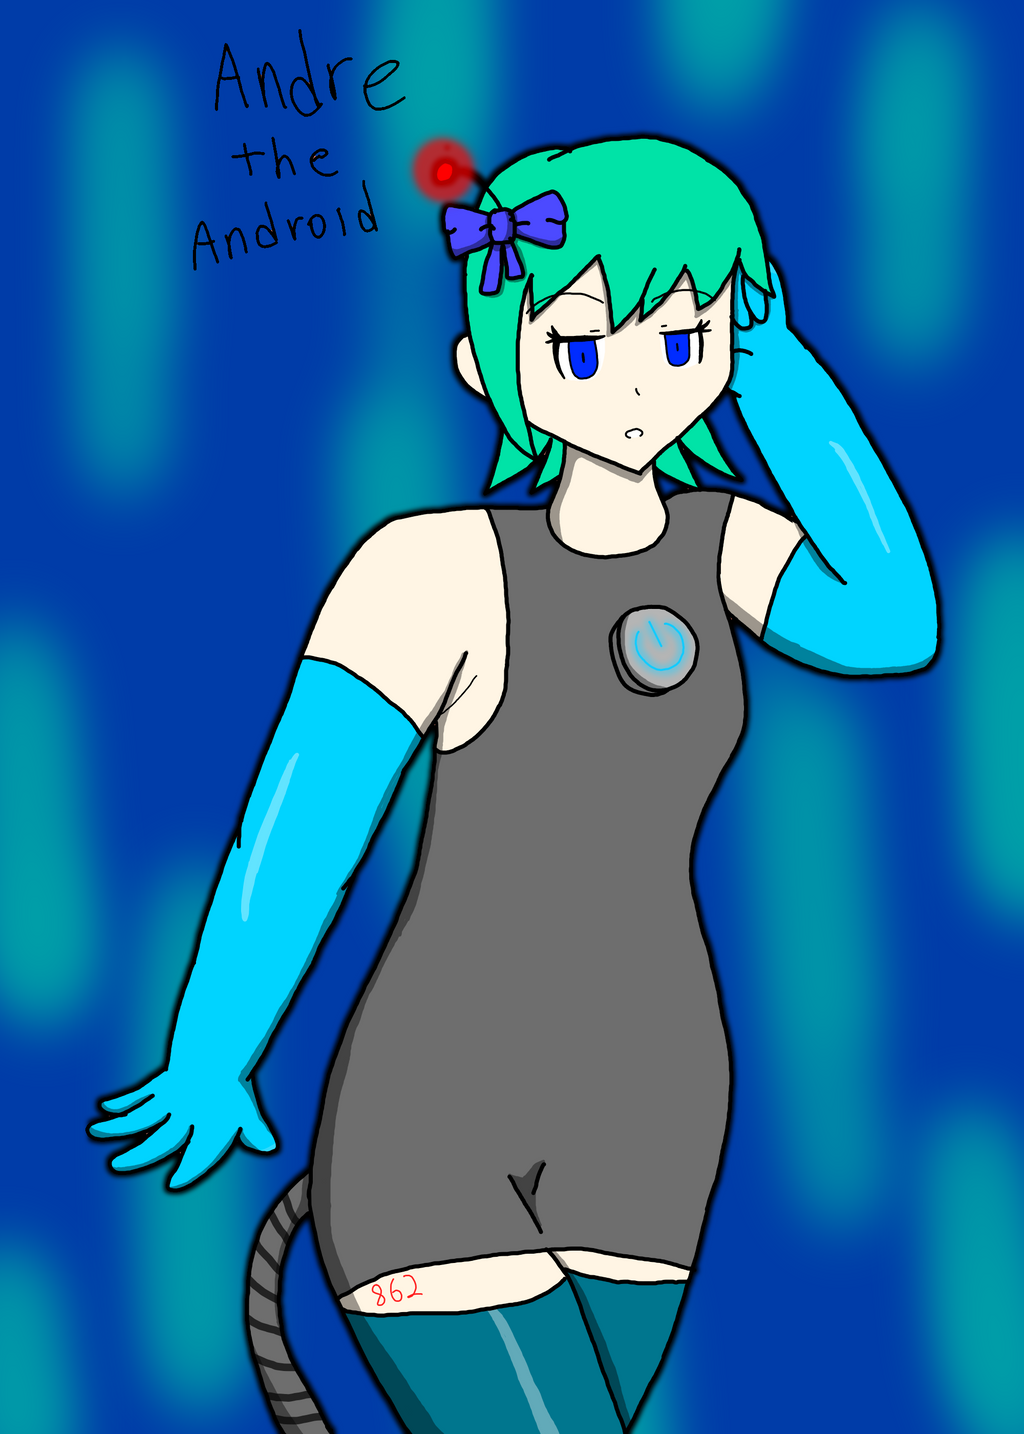 Andre the Android by RichardtheDarkBoy29